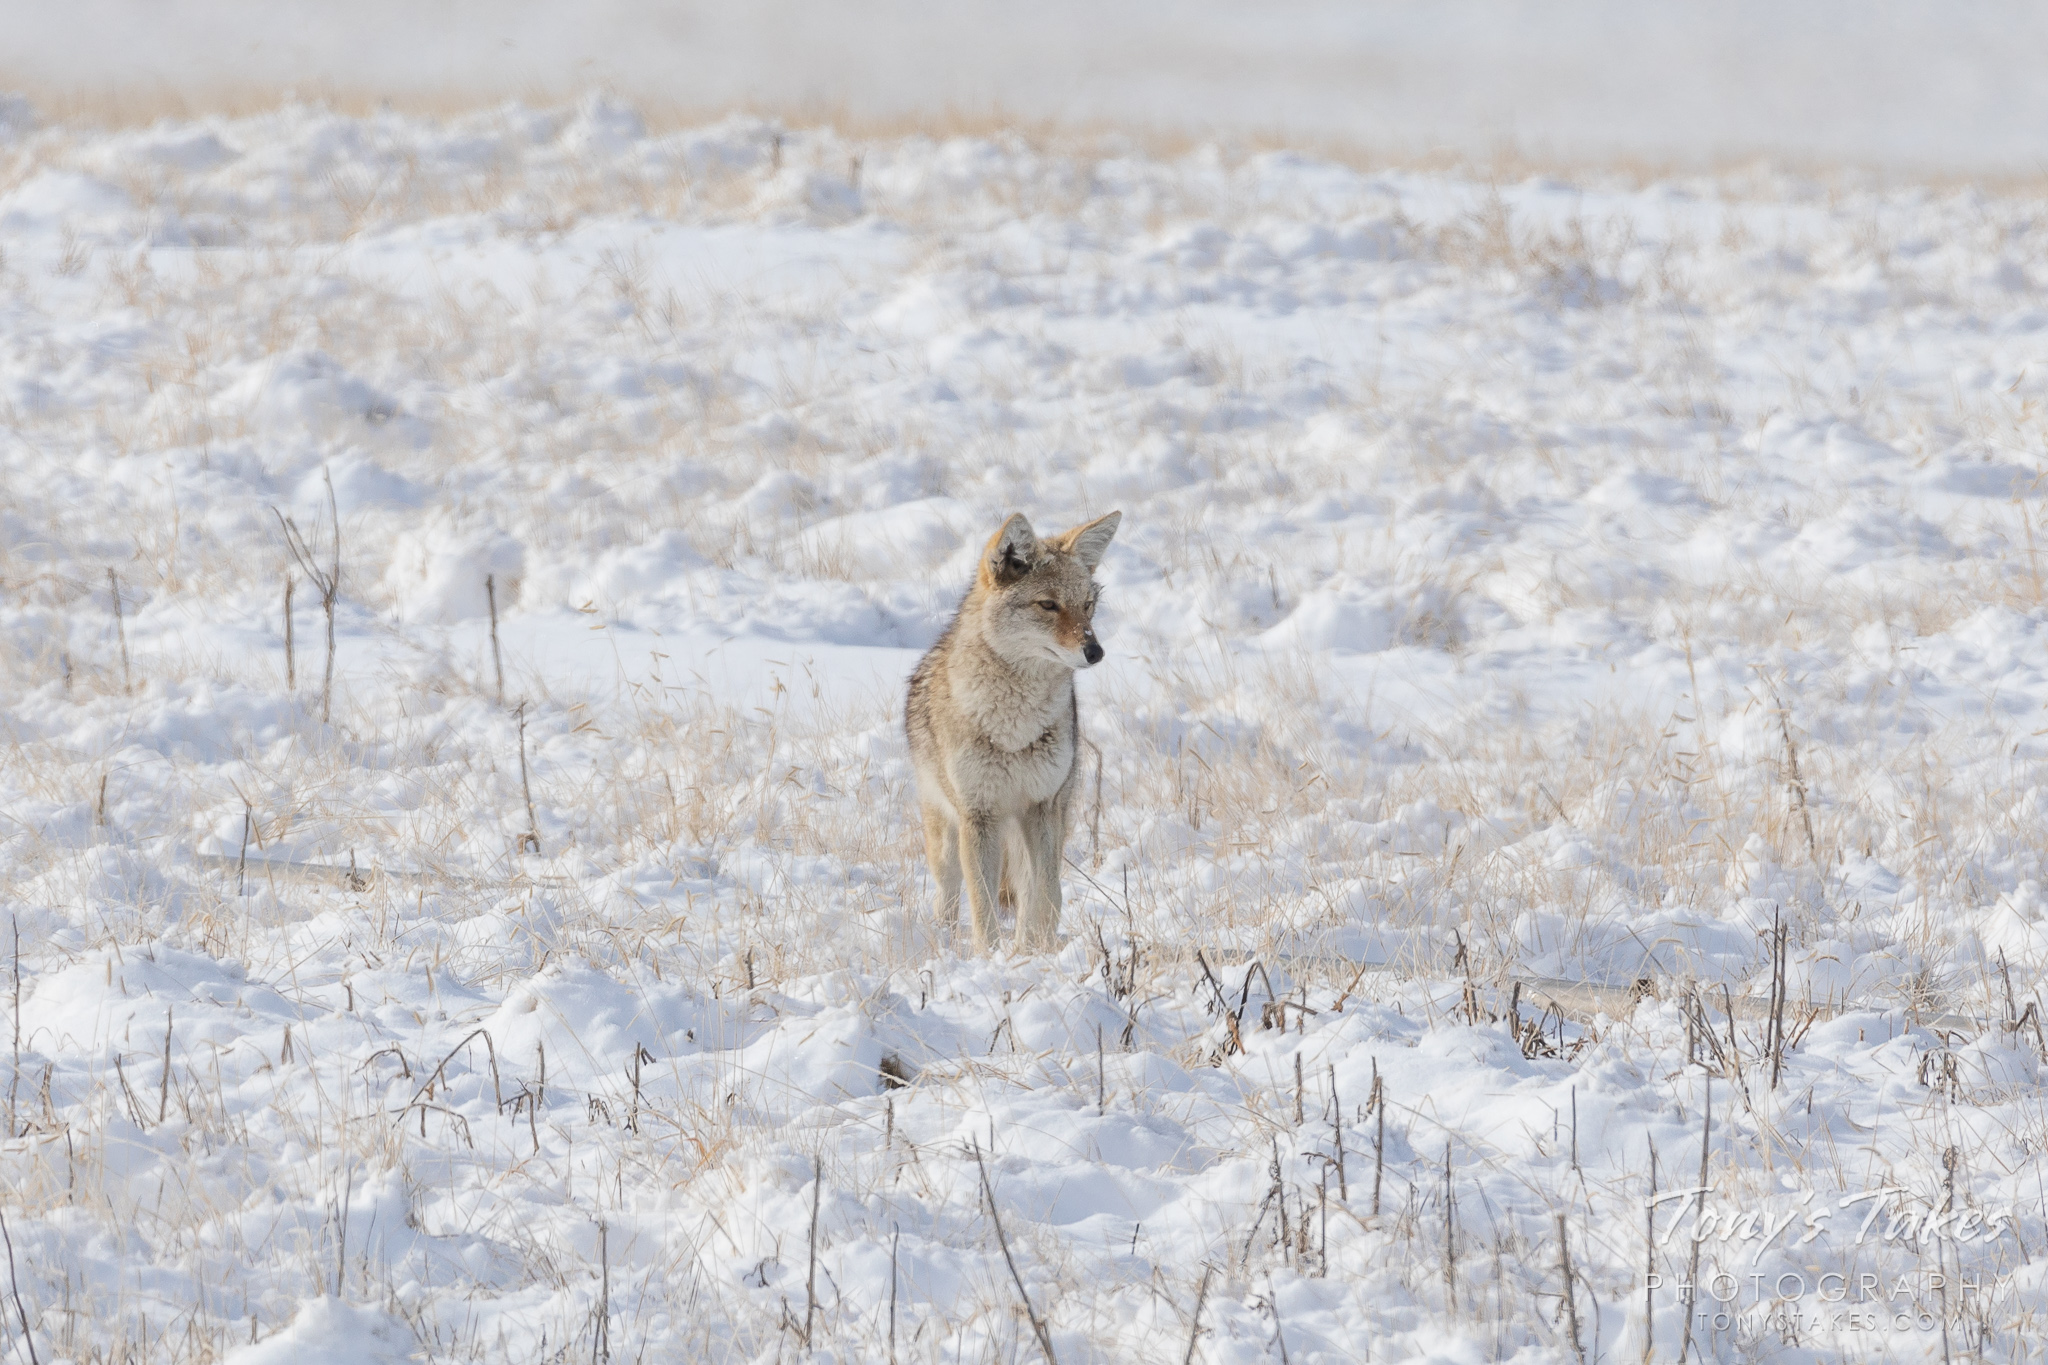 Coyote on the hunt following a winter snow